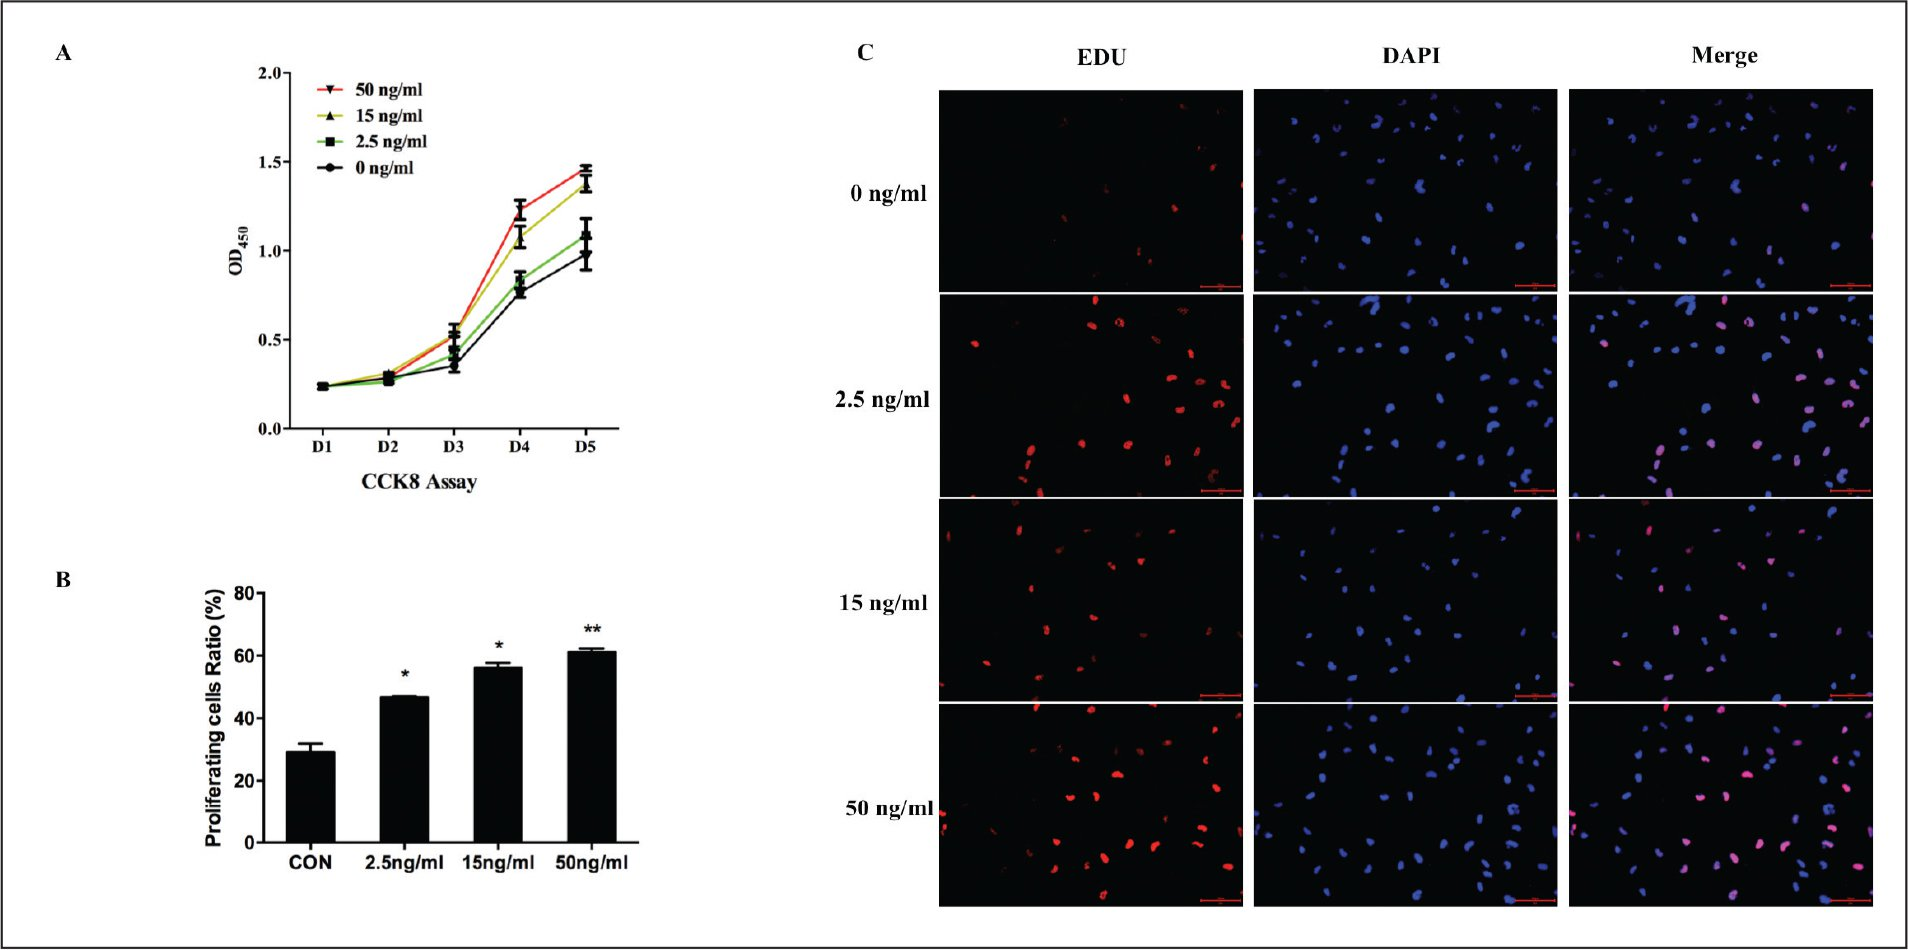 Effects of different concentrations of fibroblast growth factor 4 (FGF4) (2.5, 15, or 50 ng/mL) on the proliferation of human LEC cell line SRA01/04 (SRA) cells in vitro. (A) Compared with the control (0 ng/mL), cell viability increased significantly in cells treated with 15 or 50 ng/mL of FGF4, when measured with the Cell Counting Kit-8 (CCK8) assay (P < .05 from days 3 to 5). (B, C) SRA cell proliferation was measured with 5-ethynyl-2′-deoxyuridine (EdU). All cell nuclei were stained with 4′,6-diamidino-2-phenylindole (DAPI) and EdU labeling indicated replicating cells. The proportion of proliferating cells increased as the FGF4 concentration increased. Bar = 100 µm. OD = optical density. *P < .05, **P < .001.